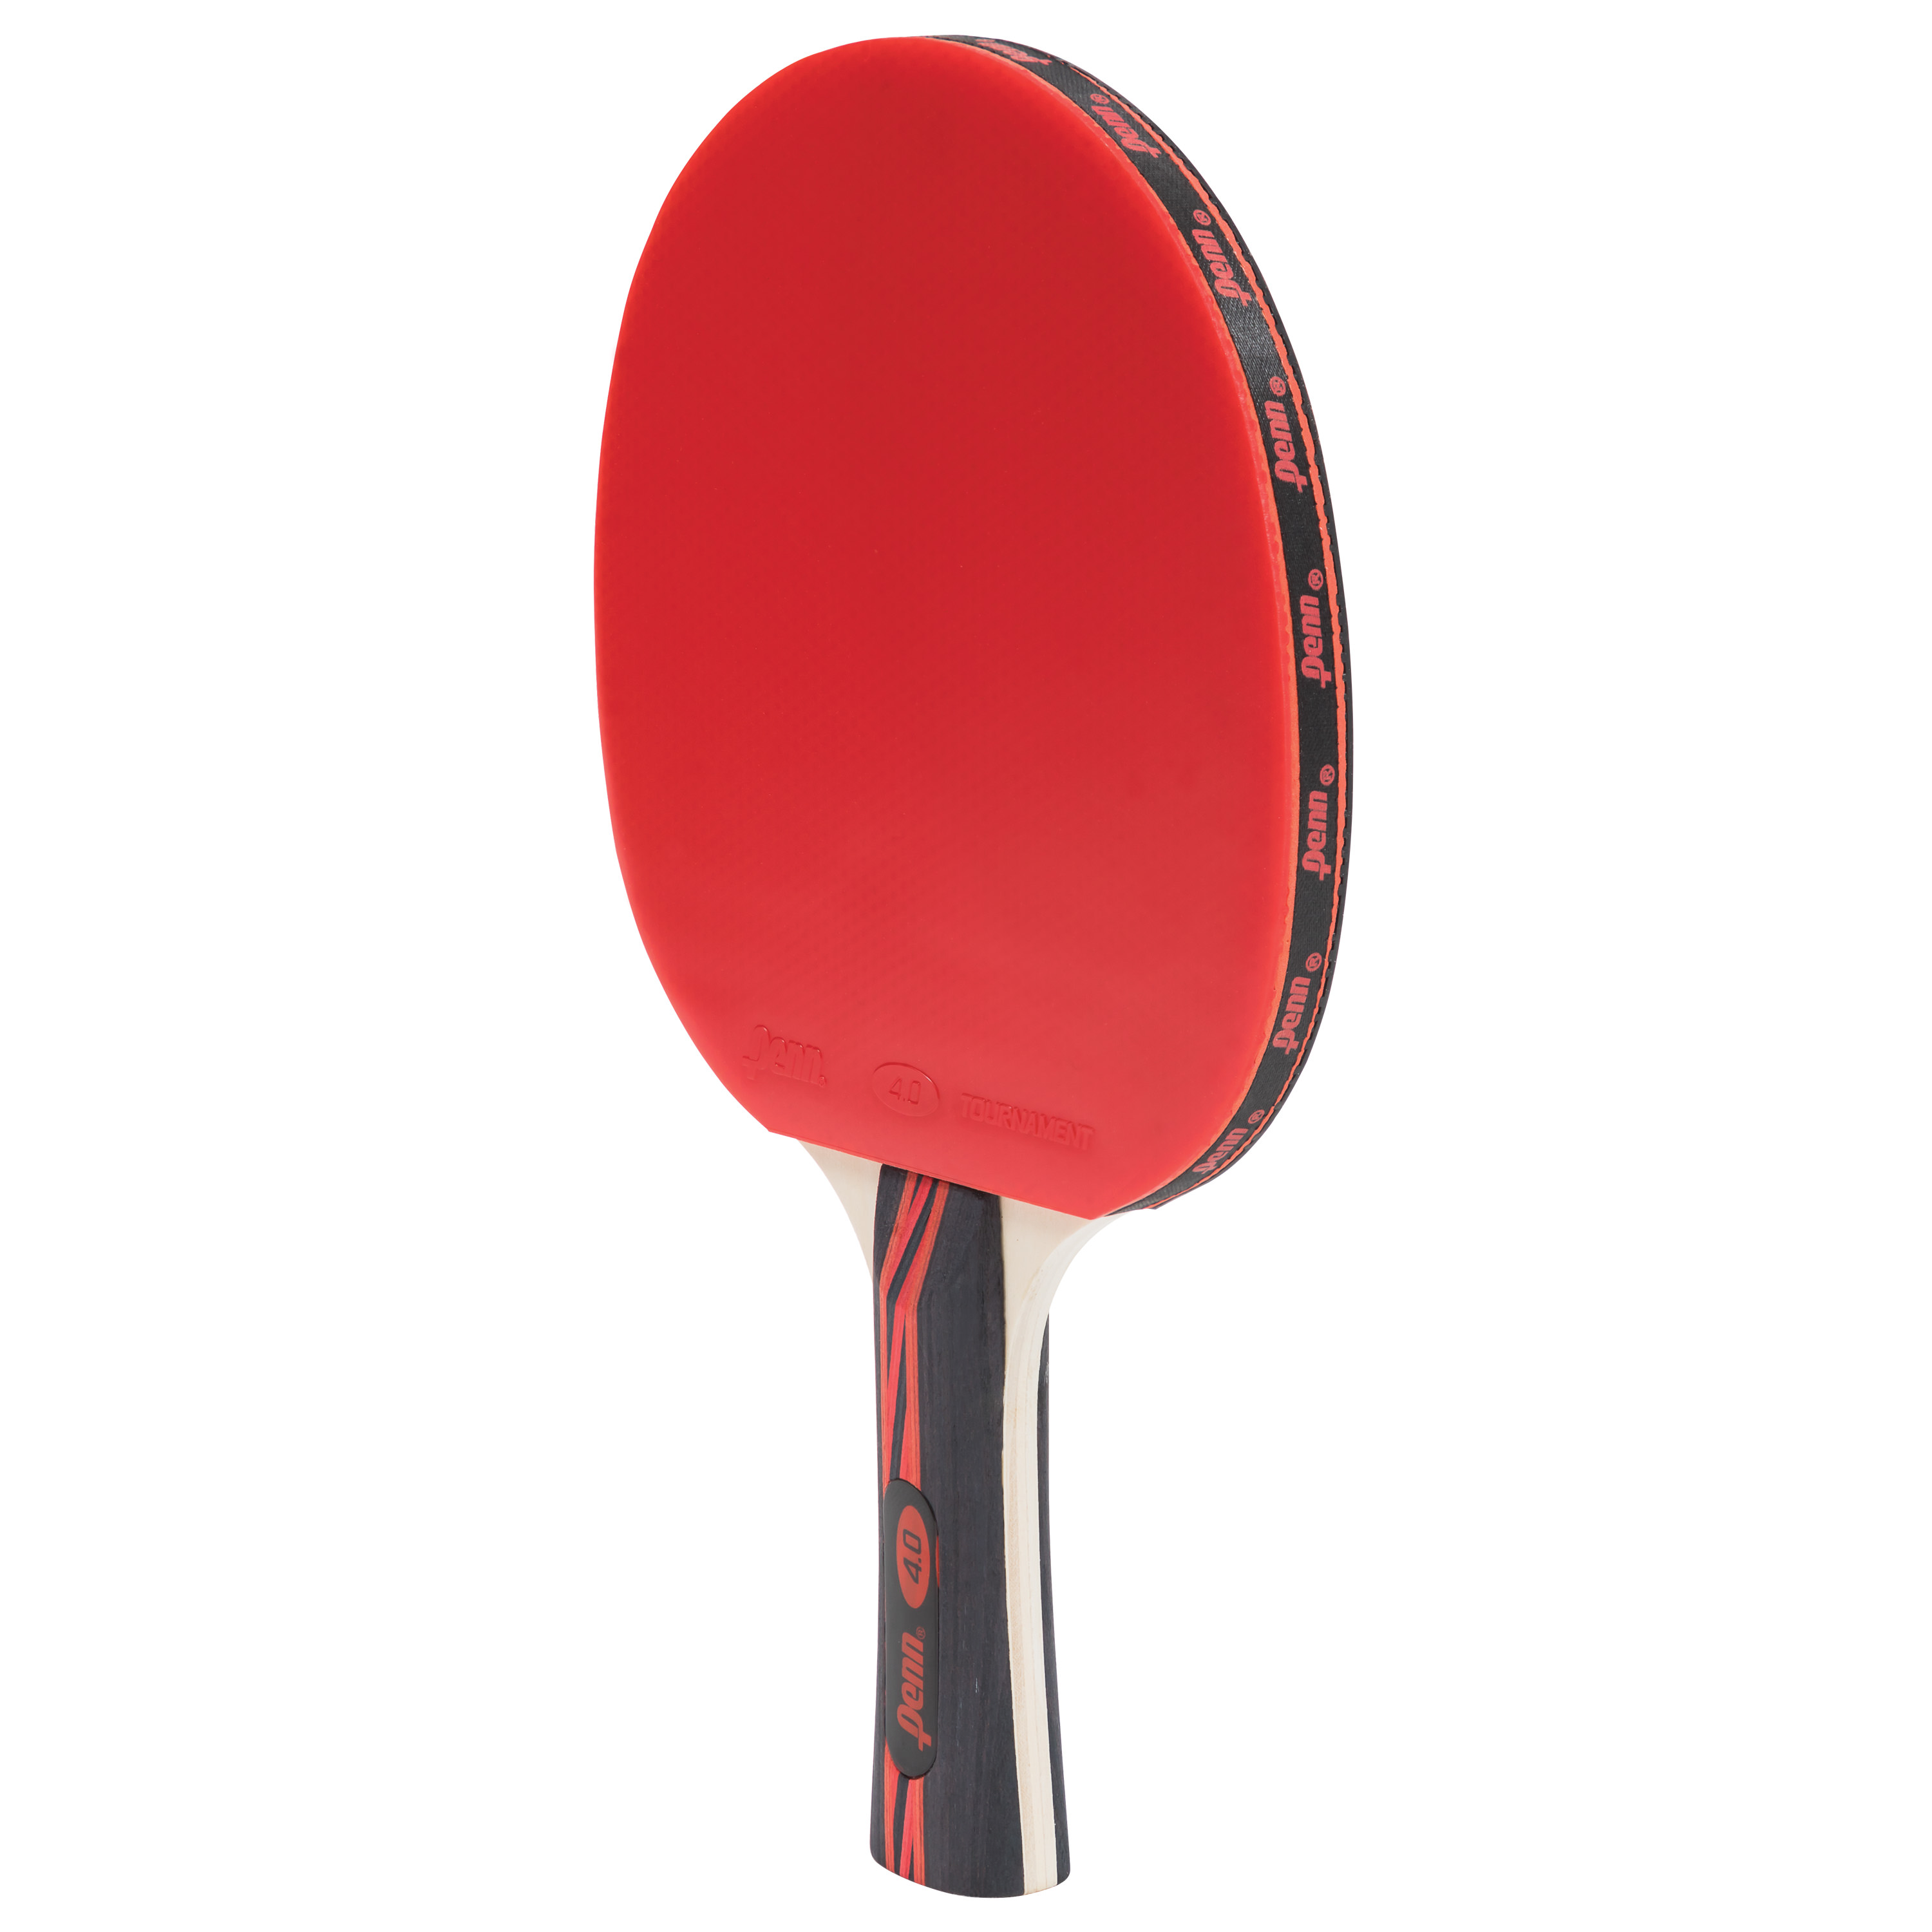 Penn 4.0 Tour Ping Pong Table Tennis Paddle, Red